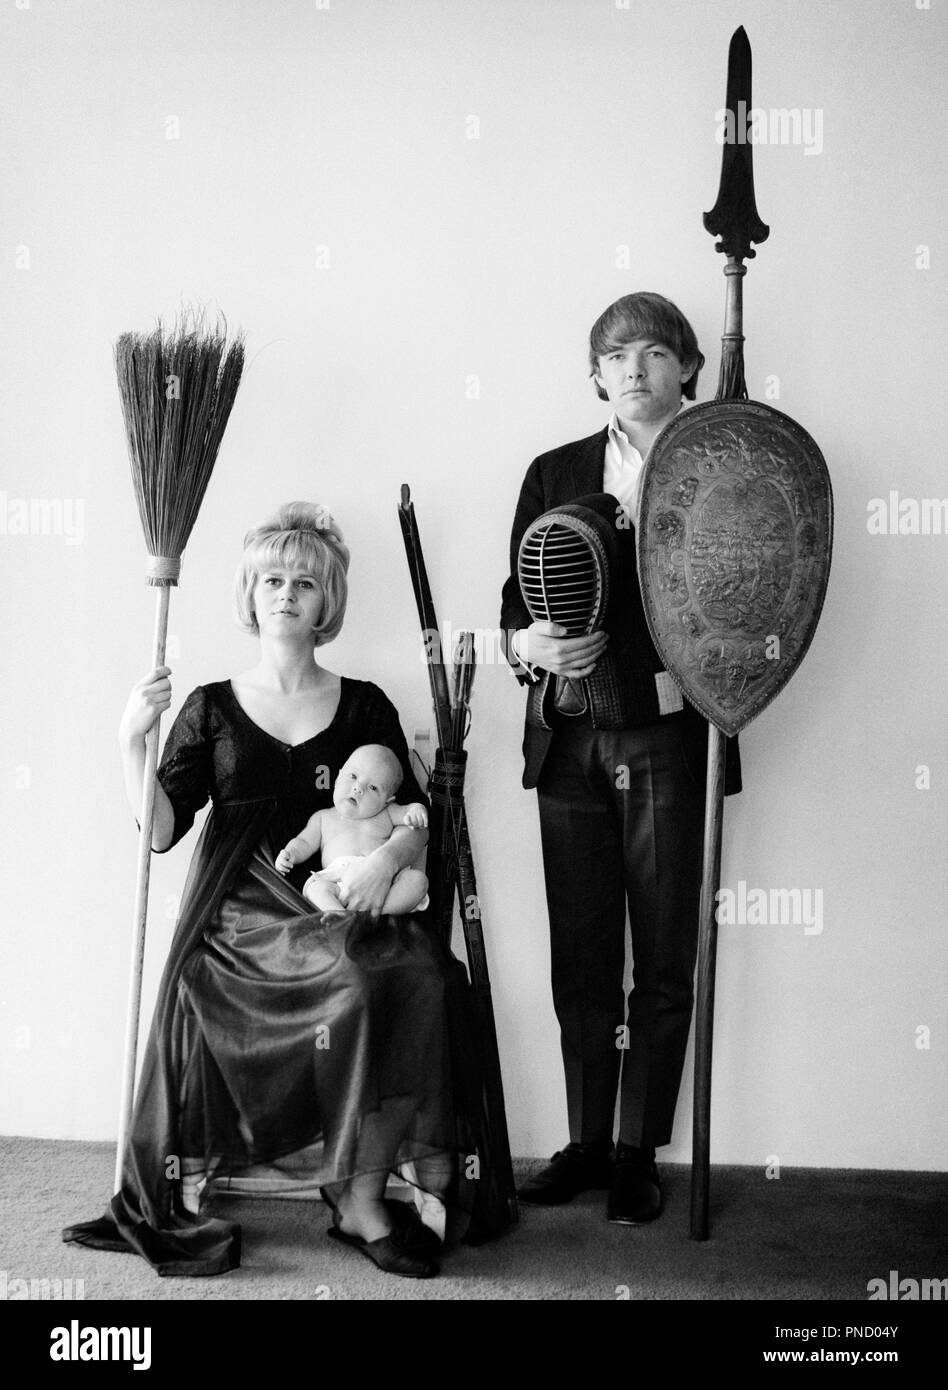 1960s PORTRAIT ODD TEEN FAMILY ALL LOOKING AT CAMERA FATHER HOLDING SPEAR SHIELD FENCING MASK MOTHER OLD BROOM AND BABY DAUGHTER - b25460 HAR001 HARS DAD BABIES MOM CLOTHING INDOORS NOSTALGIC PAIR ROMANCE MOTHERS OLD TIME NOSTALGIA OLD FASHION 1 JUVENILE STYLE BLOND YOUNG ADULT COMIC TEAMWORK INFANT MYSTERY ABSTRACT FAMILIES LIFESTYLE FEMALES MARRIED SPOUSE HUSBANDS SHIELD HOME LIFE COPY SPACE FULL-LENGTH LADIES DAUGHTERS PERSONS INSPIRATION BROOM MALES FATHERS B&W EYE CONTACT ODD WEIRD ADVENTURE STRANGE AND DADS ZANY UNCONVENTIONAL CONNECTION CONCEPTUAL IMAGINATION STYLISH TEENAGED UNUSUAL - Stock Image